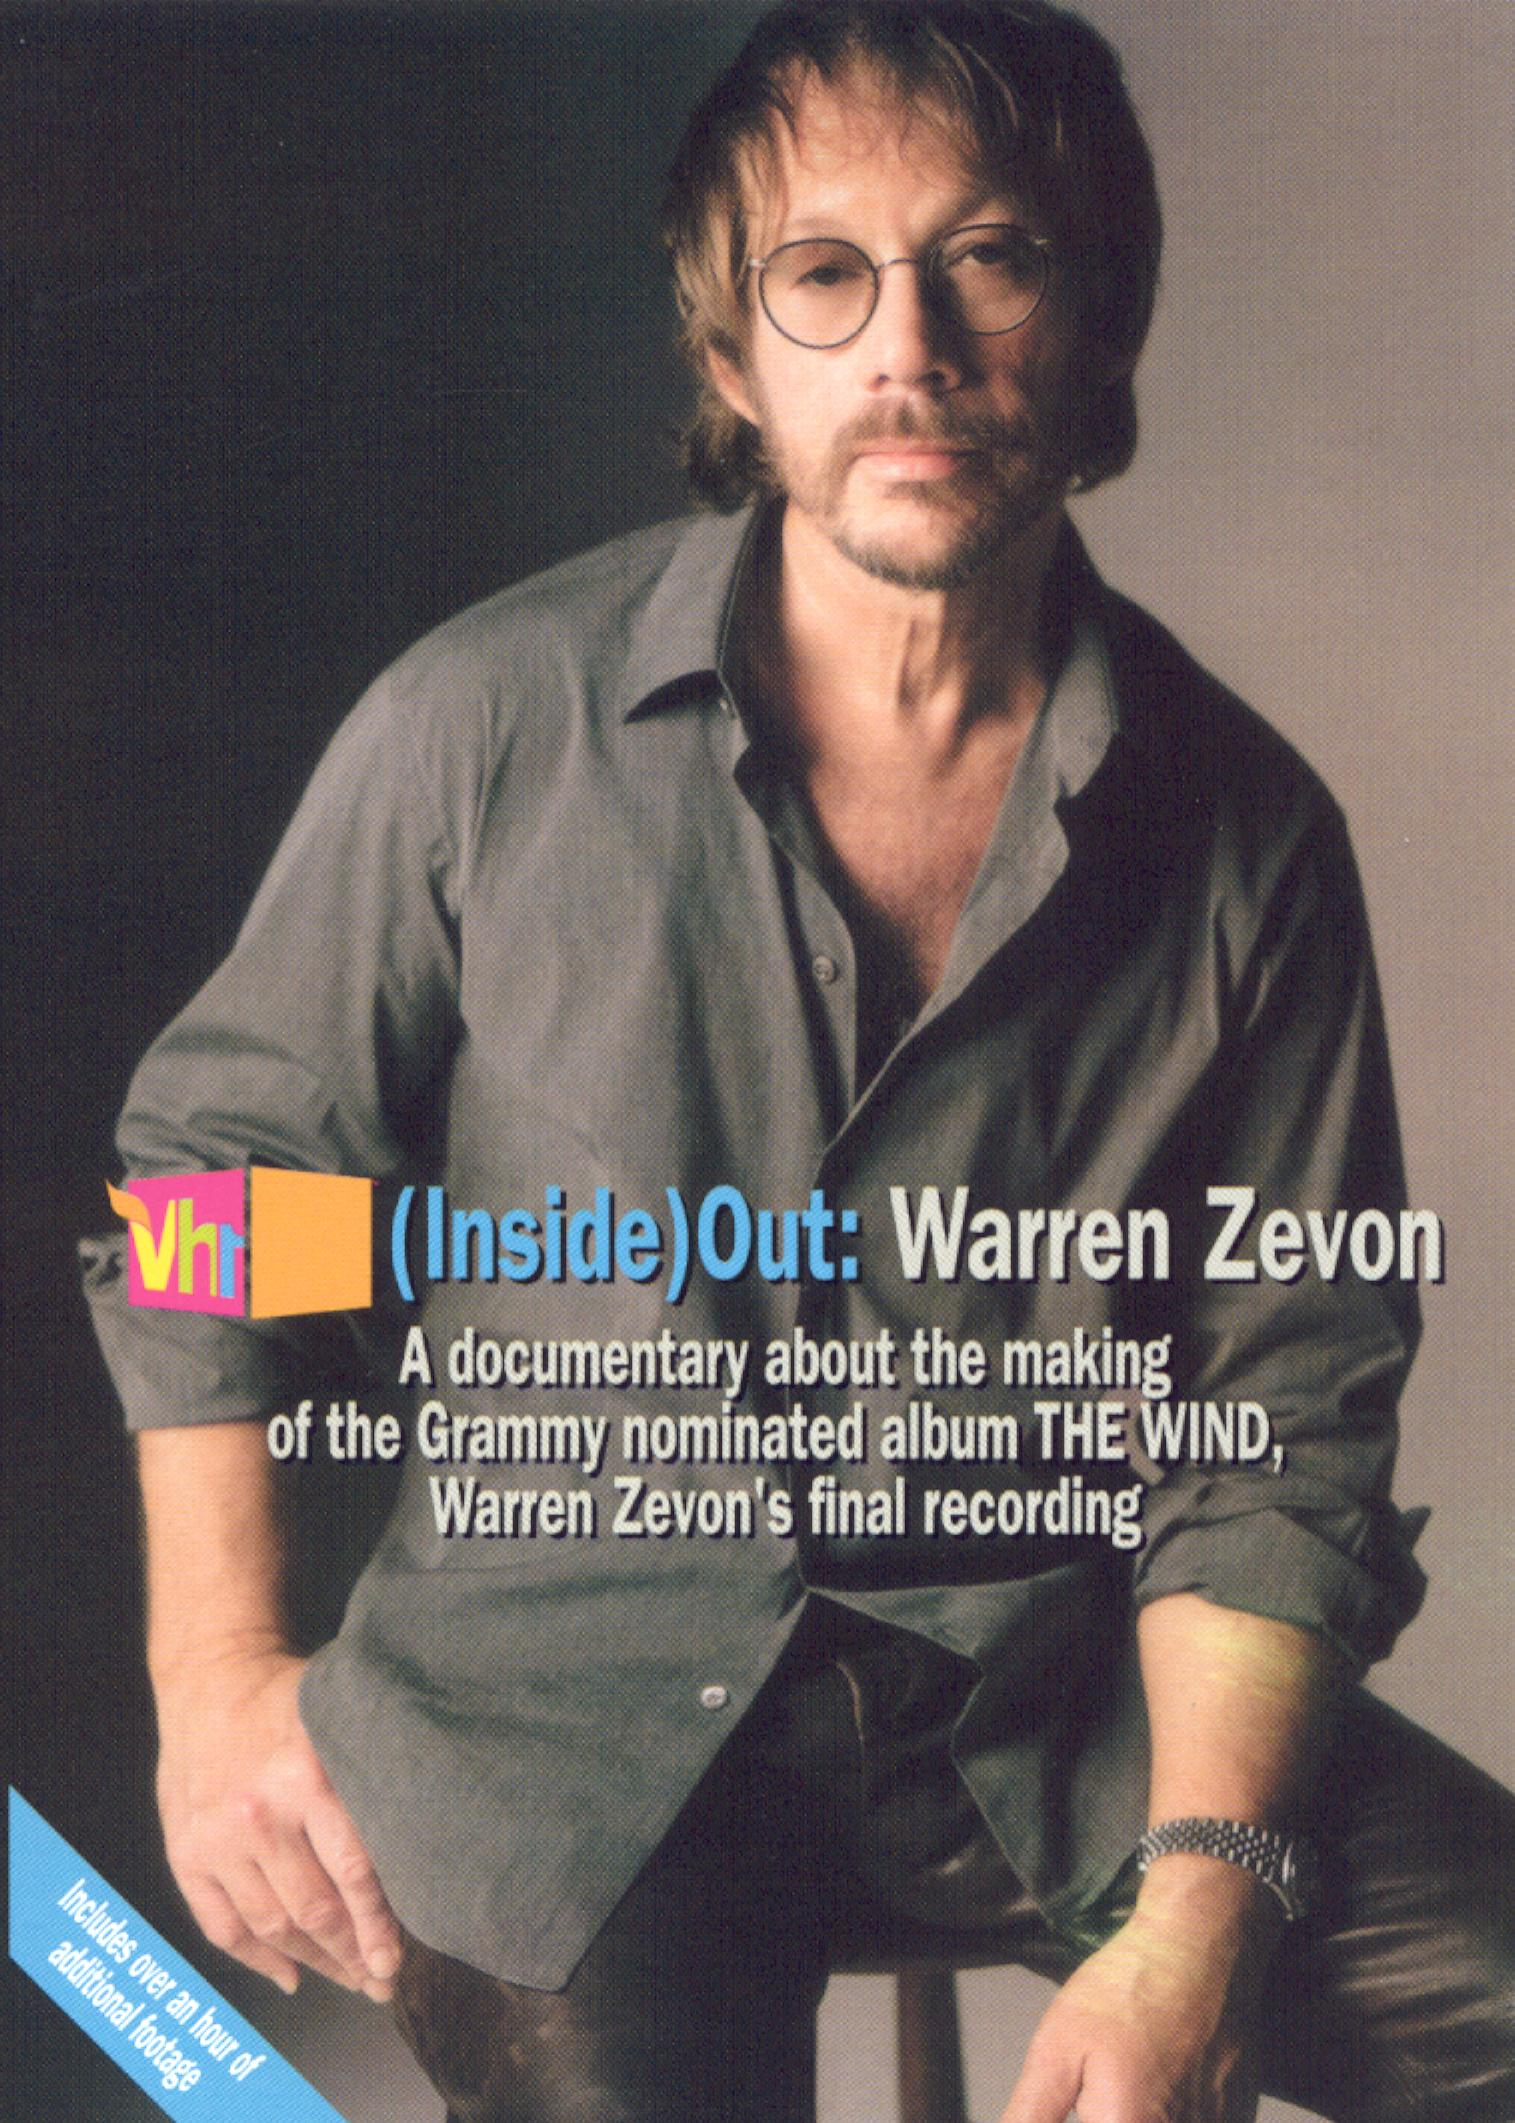 VH1 (Inside) Out: Warren Zevon - Keep Me in Your Heart